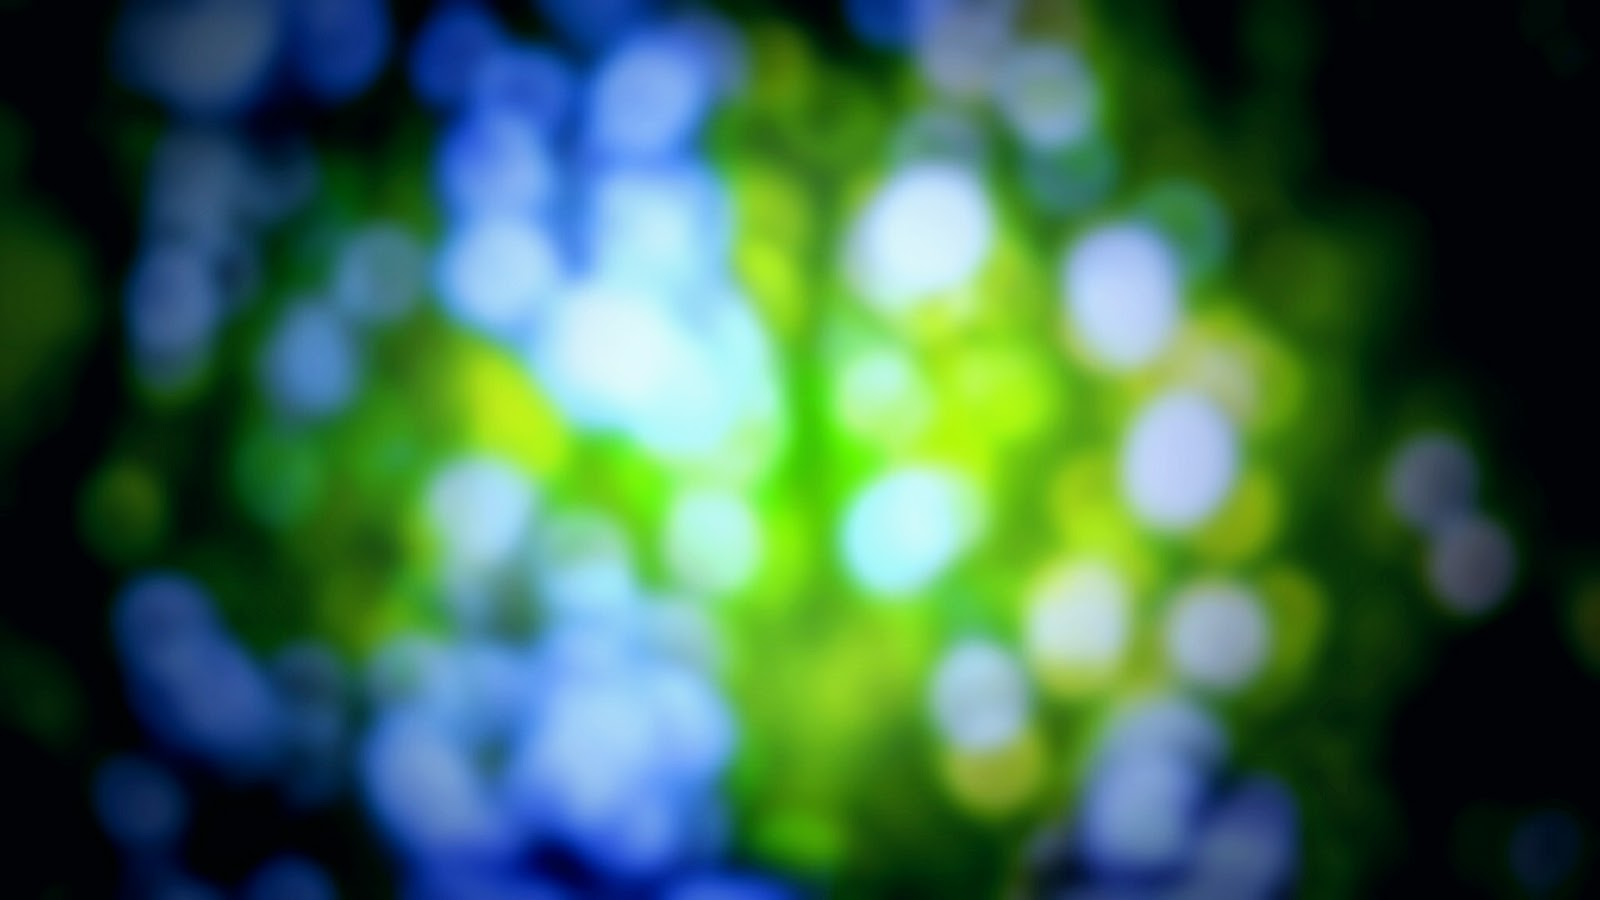 Quot Bokeh Quot Hd Backgrounds Download Zip File In 1 Click For Free